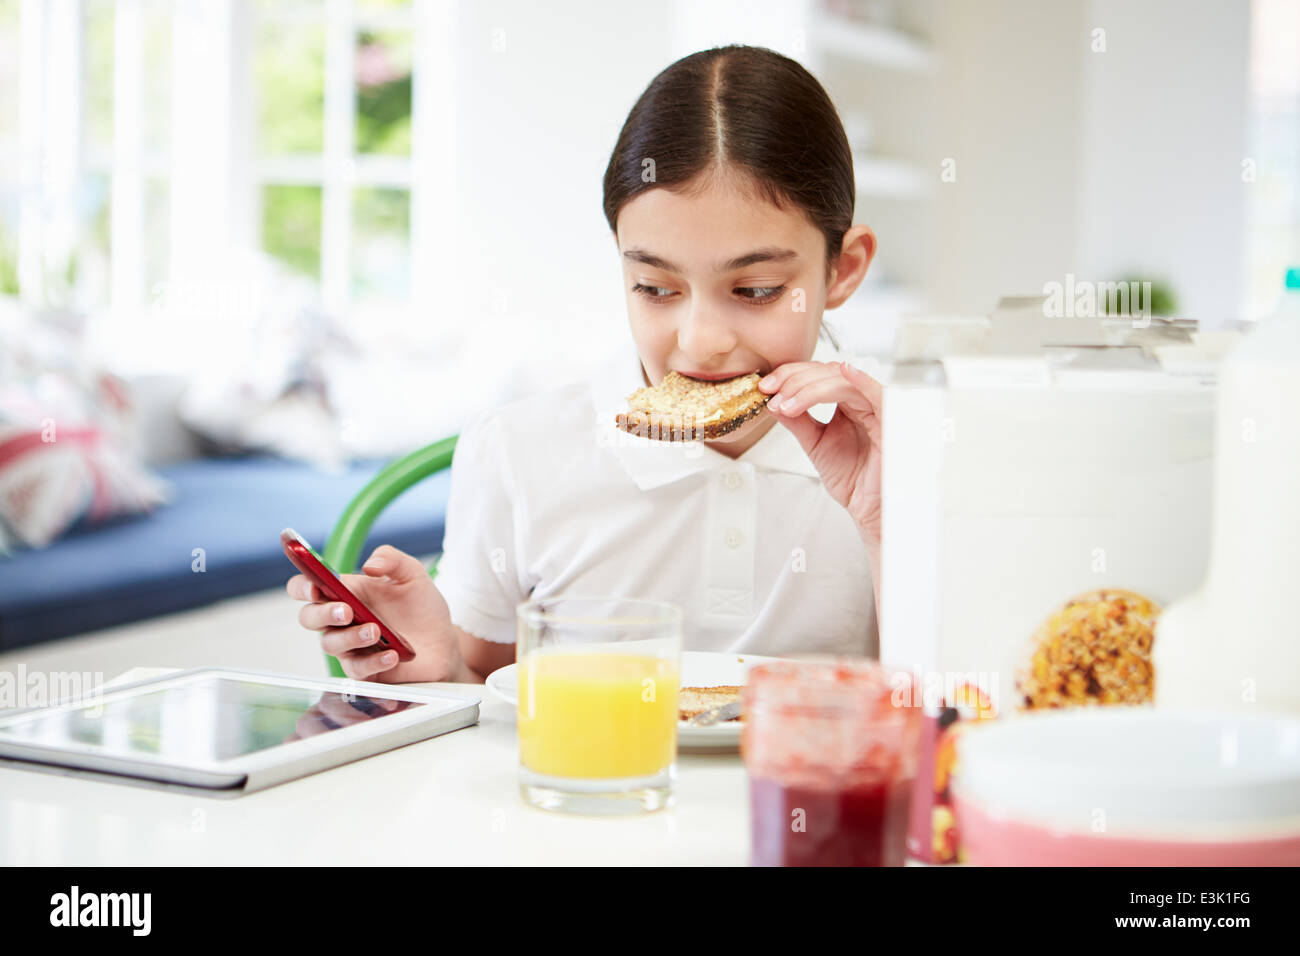 Schoolgirl With Digital Tablet And Mobile Eating Toast - Stock Image